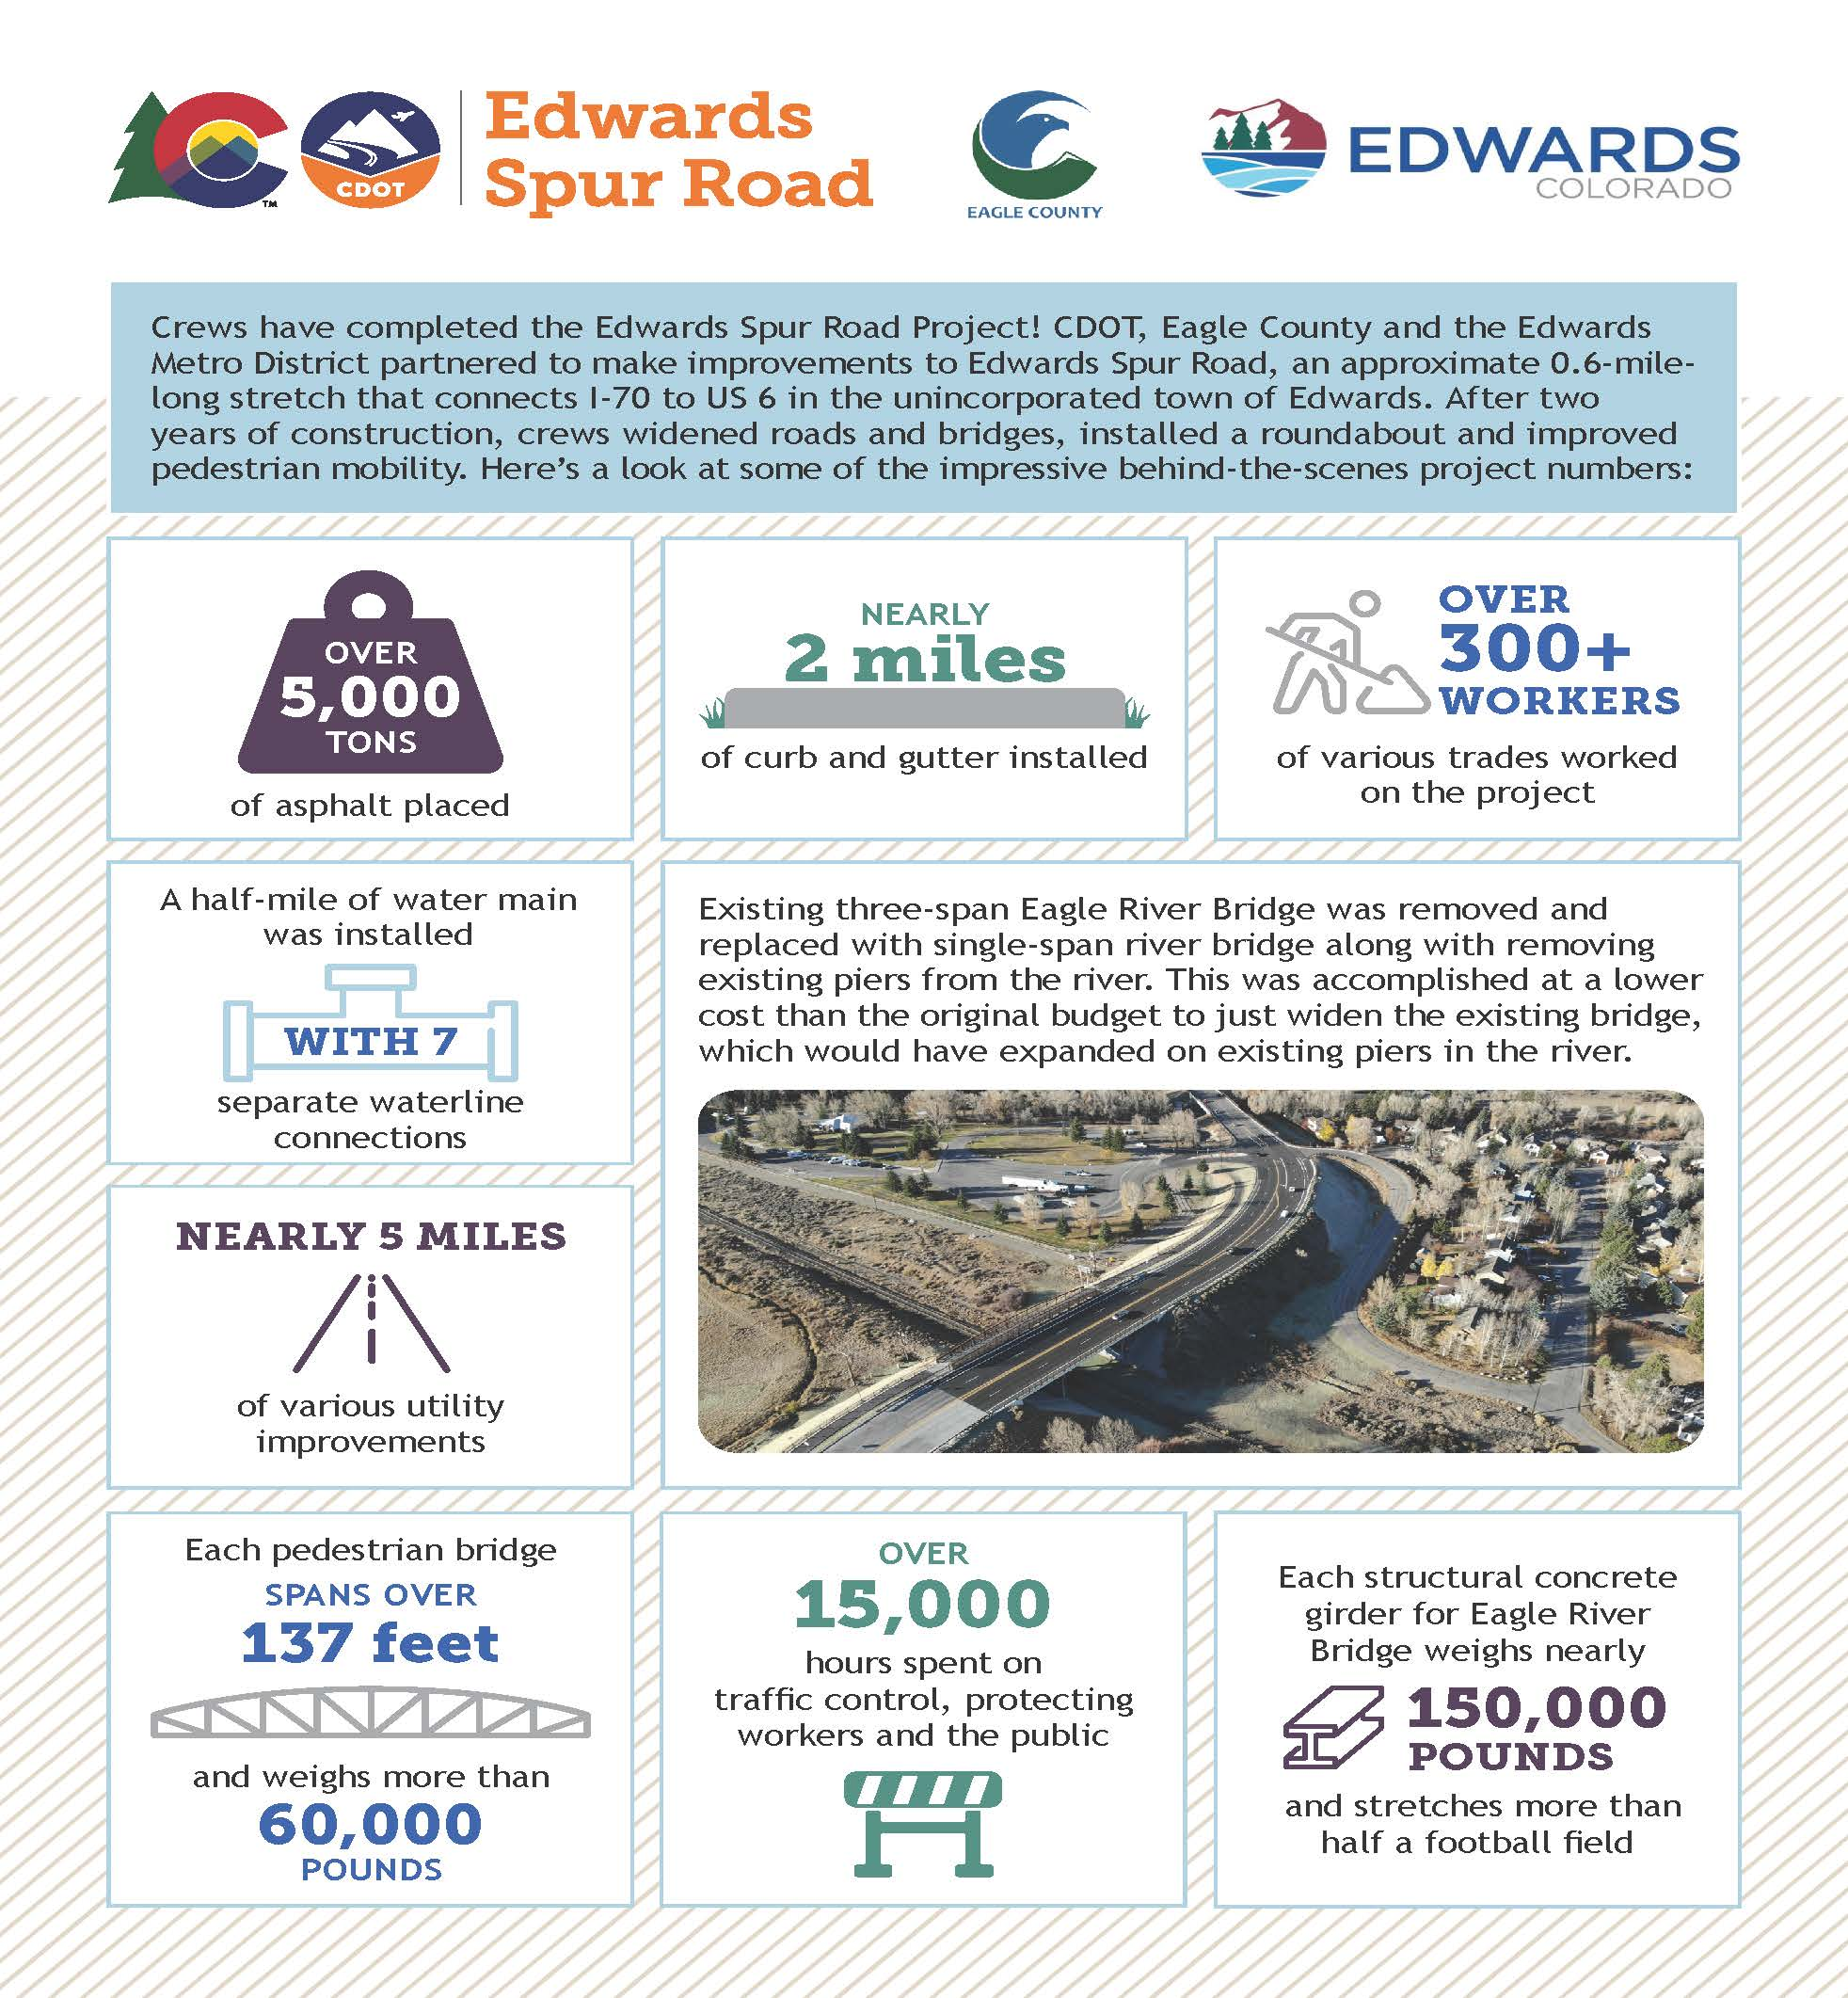 CDOT Kraemer Edward Spur Road Project Fact Sheet